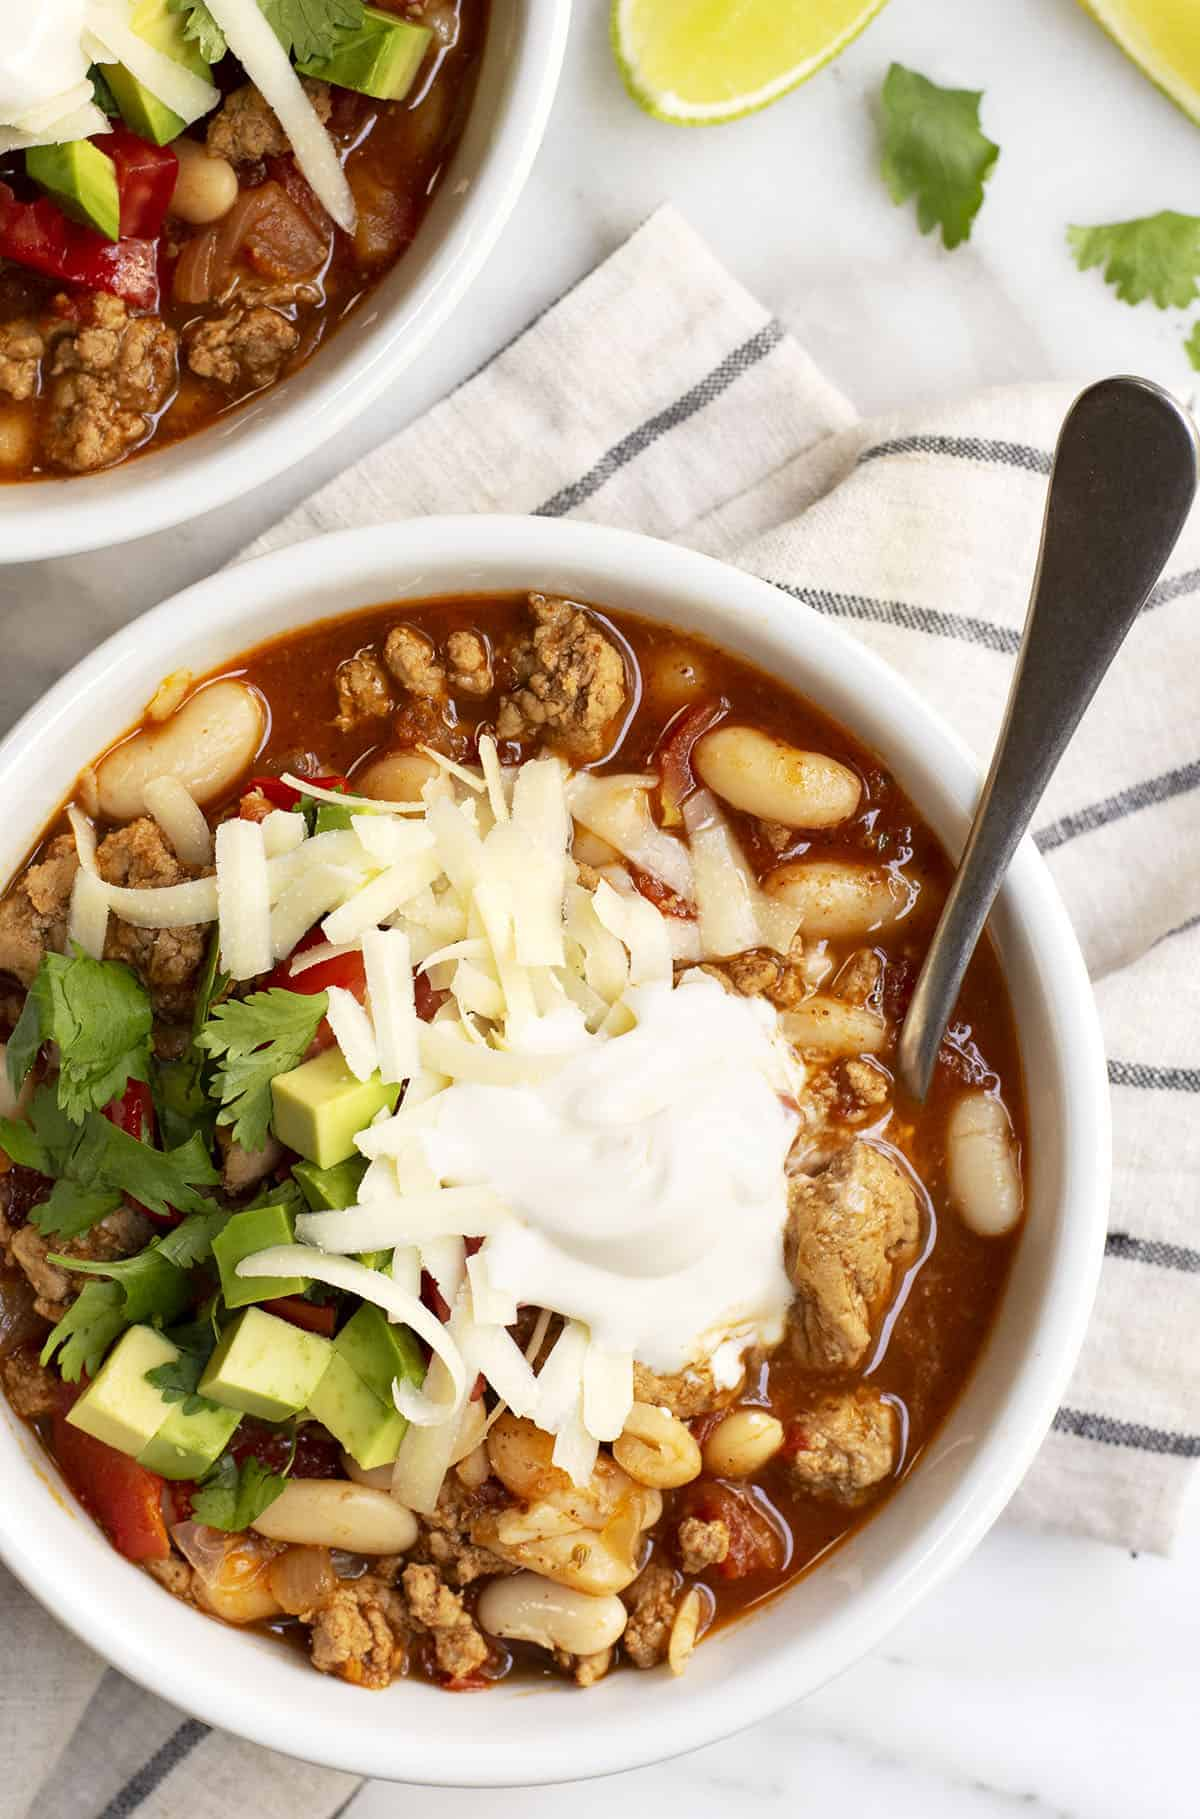 White Bean Turkey Chili served in white bowls with linen napkin underneath photograph from above